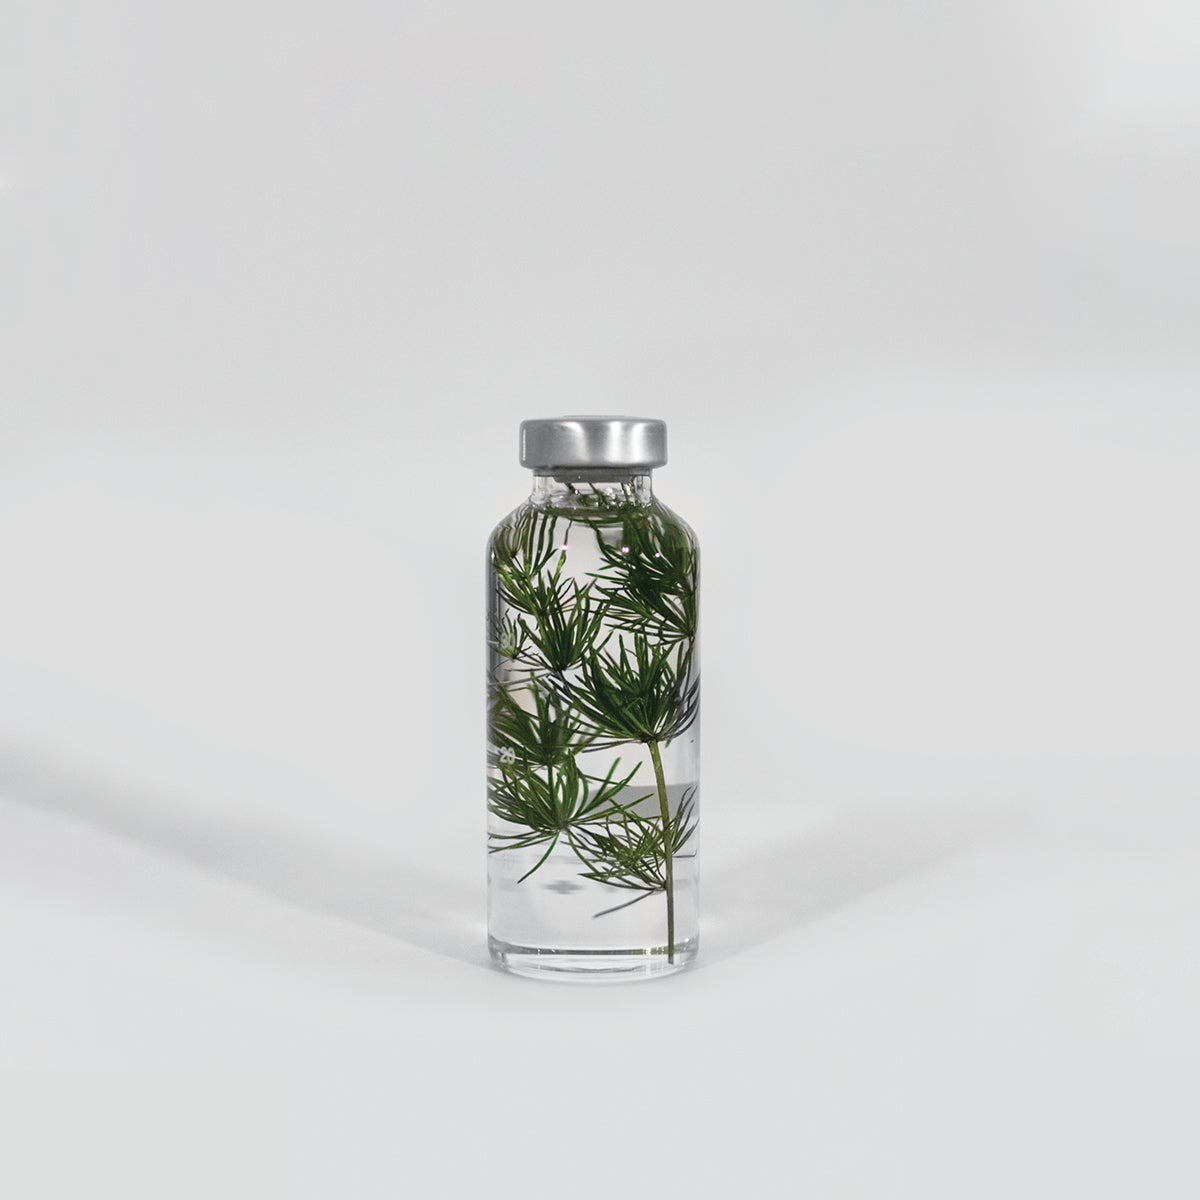 Plante en bouteille 30ml | Myriophyllum - Slow Pharmacy